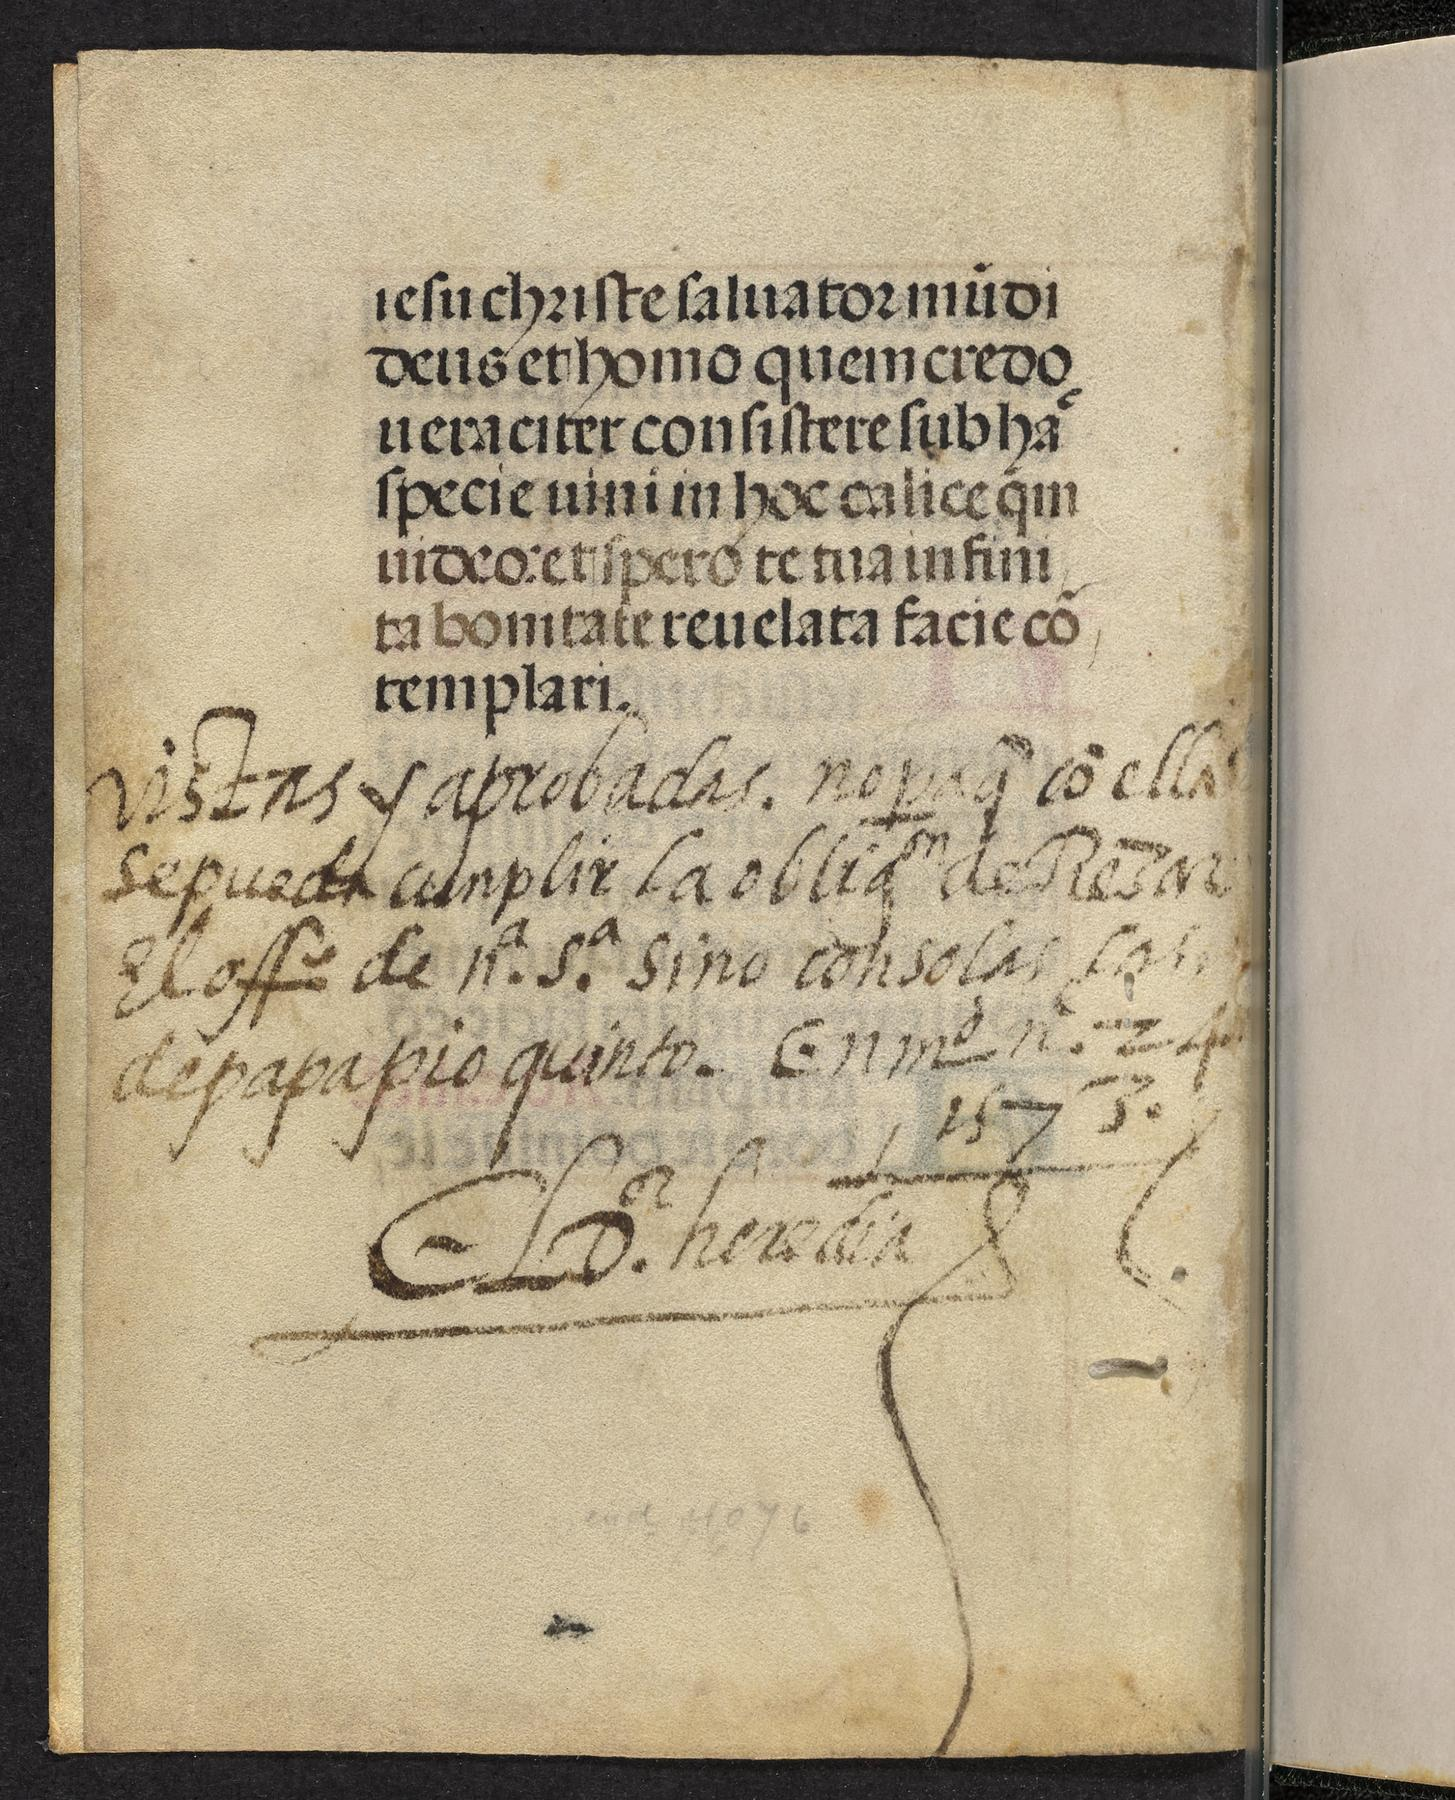 http://openn.library.upenn.edu/Data/0007/lehigh_codex_019/data/web/6689_0369_web.jpg